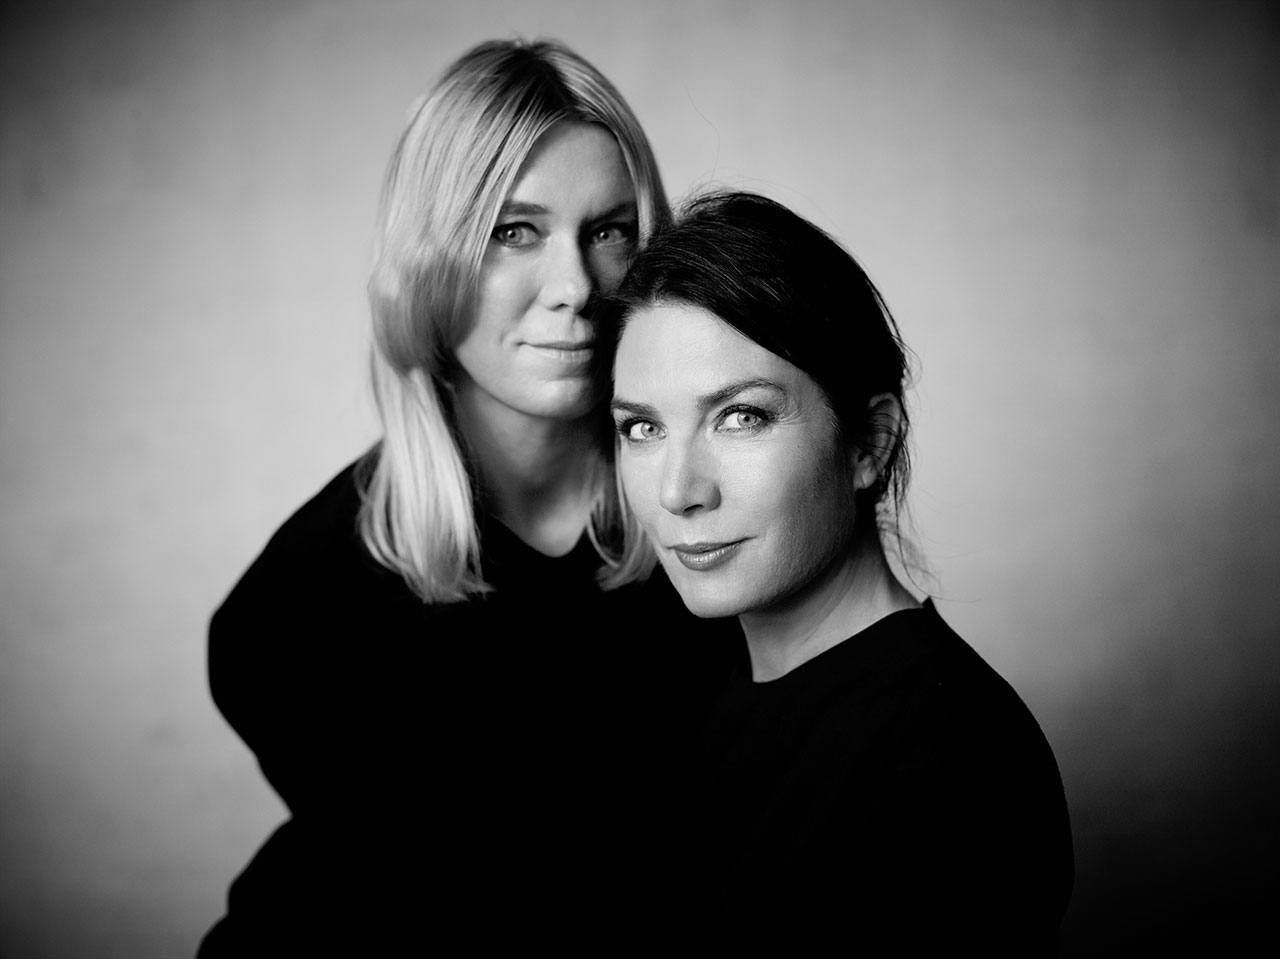 Marie and Annica Eklund, photo © Tobias Regell for 'The Story Of BOLON' book